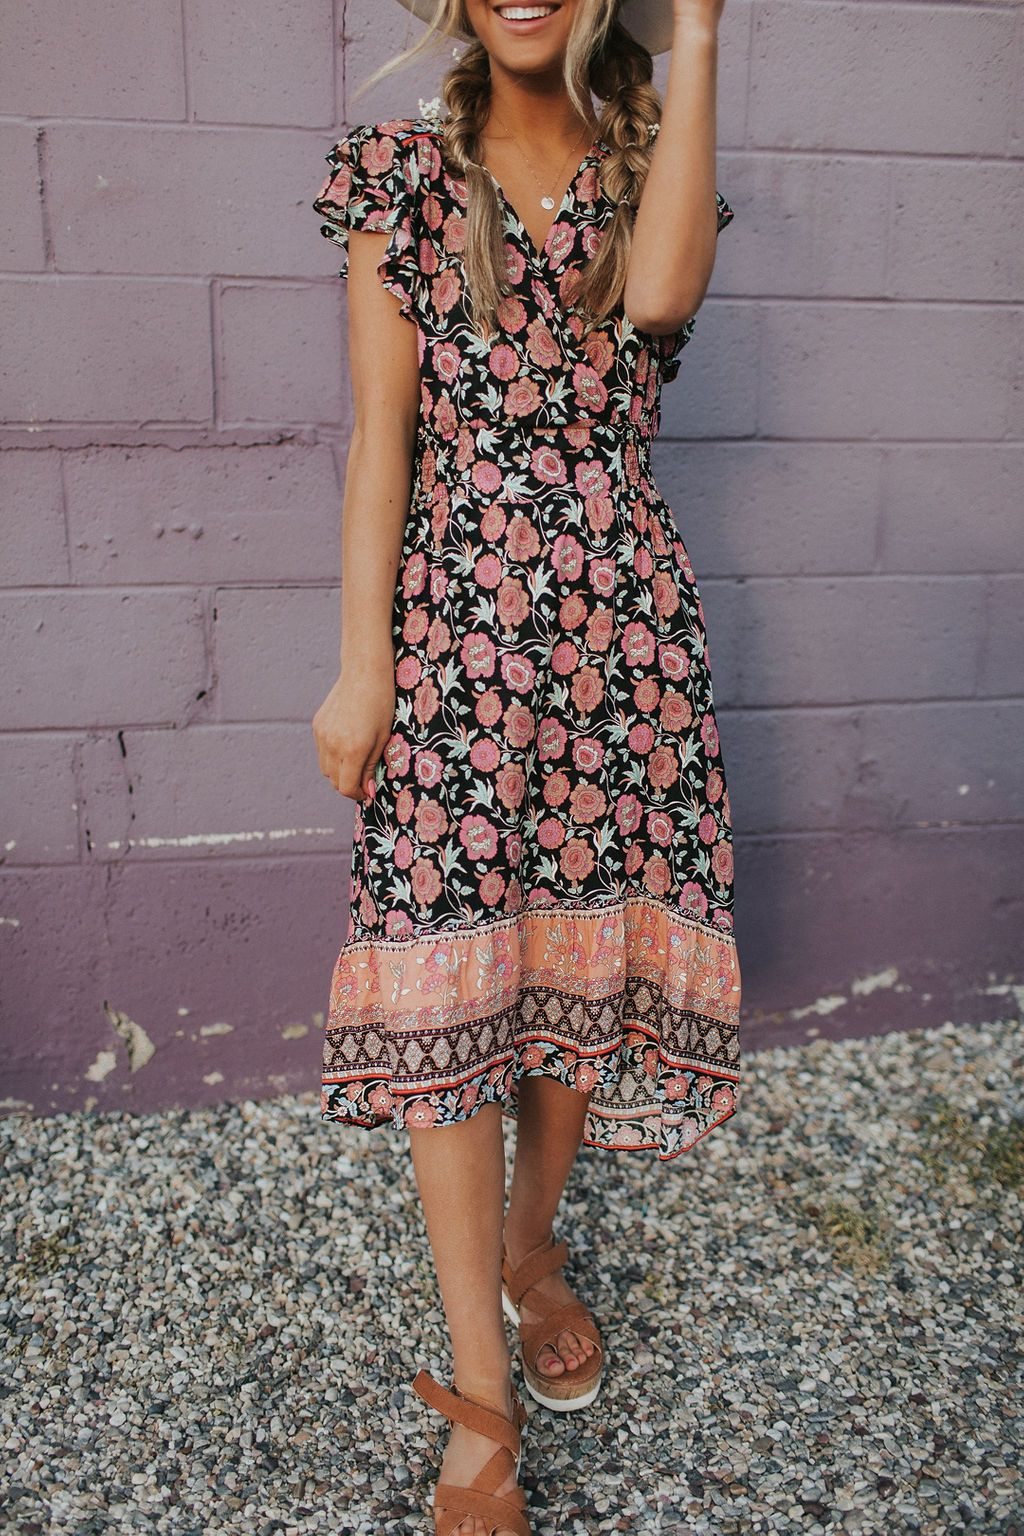 Summer Dress Style In 2020 Summer Fashion Dresses Modest Outfits Dresses [ 1536 x 1024 Pixel ]